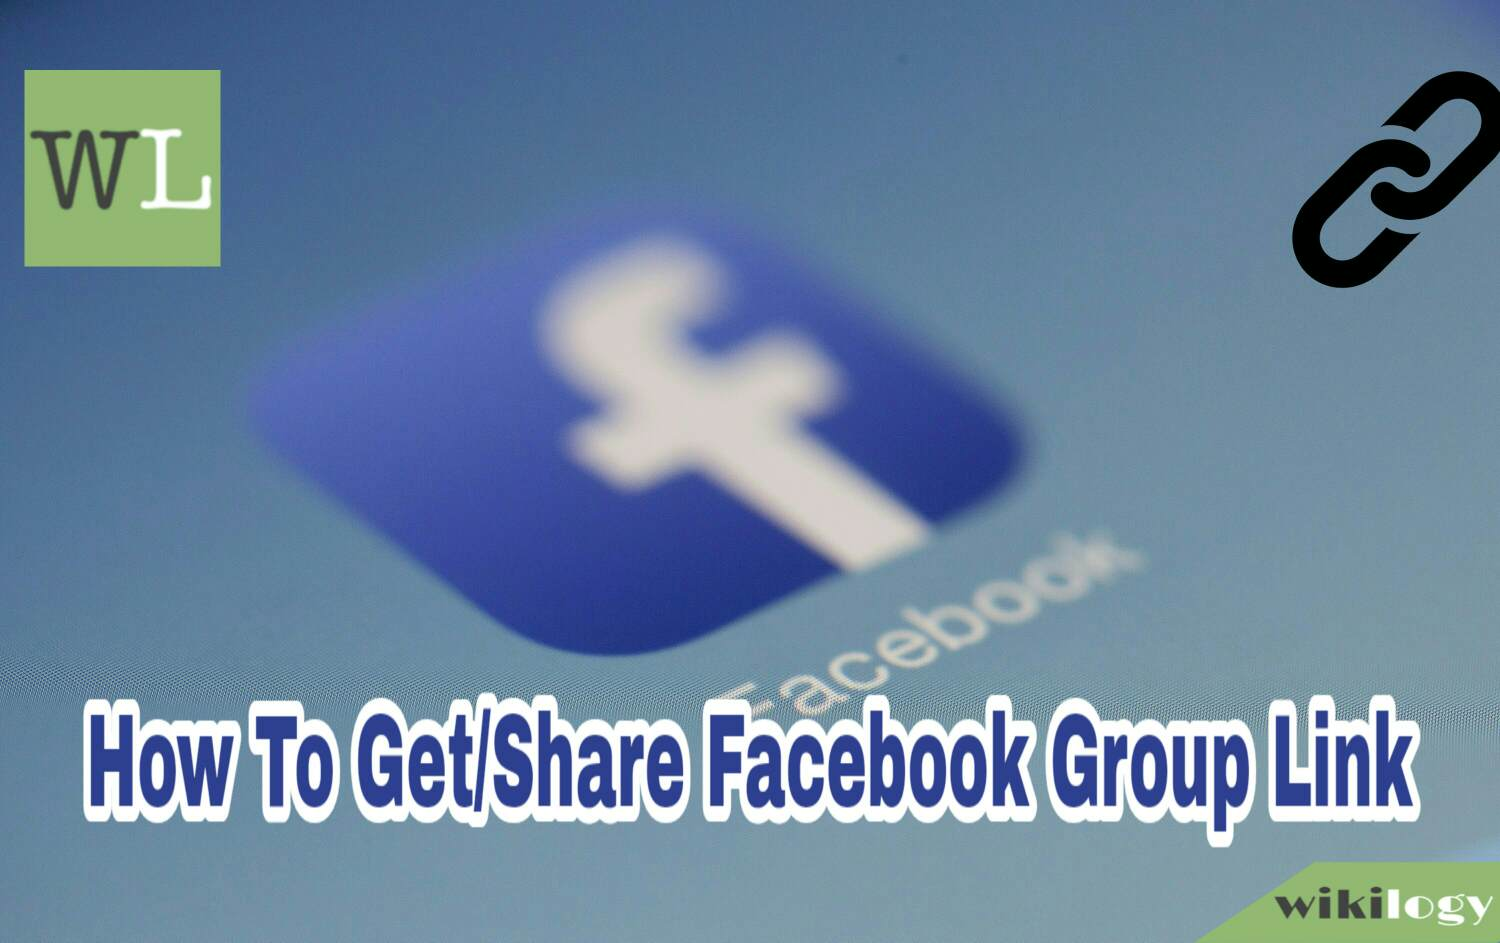 How To Get/ Share Facebook Group Link